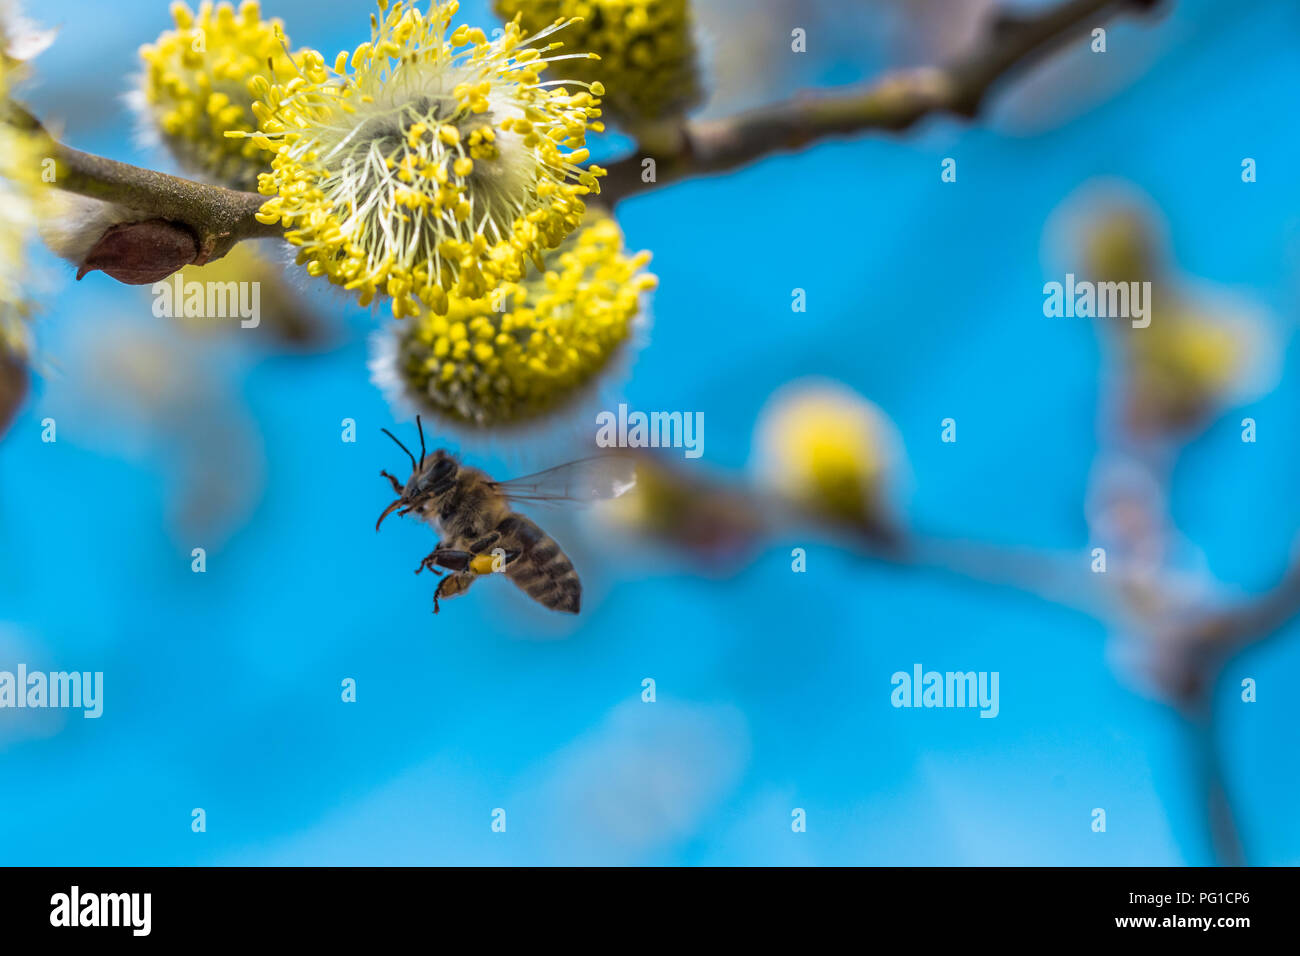 A hard working European honey bee pollinating a yellow flower in a spring. Caught when flying. Beautiful macro shot with shallow depth of field and bl - Stock Image